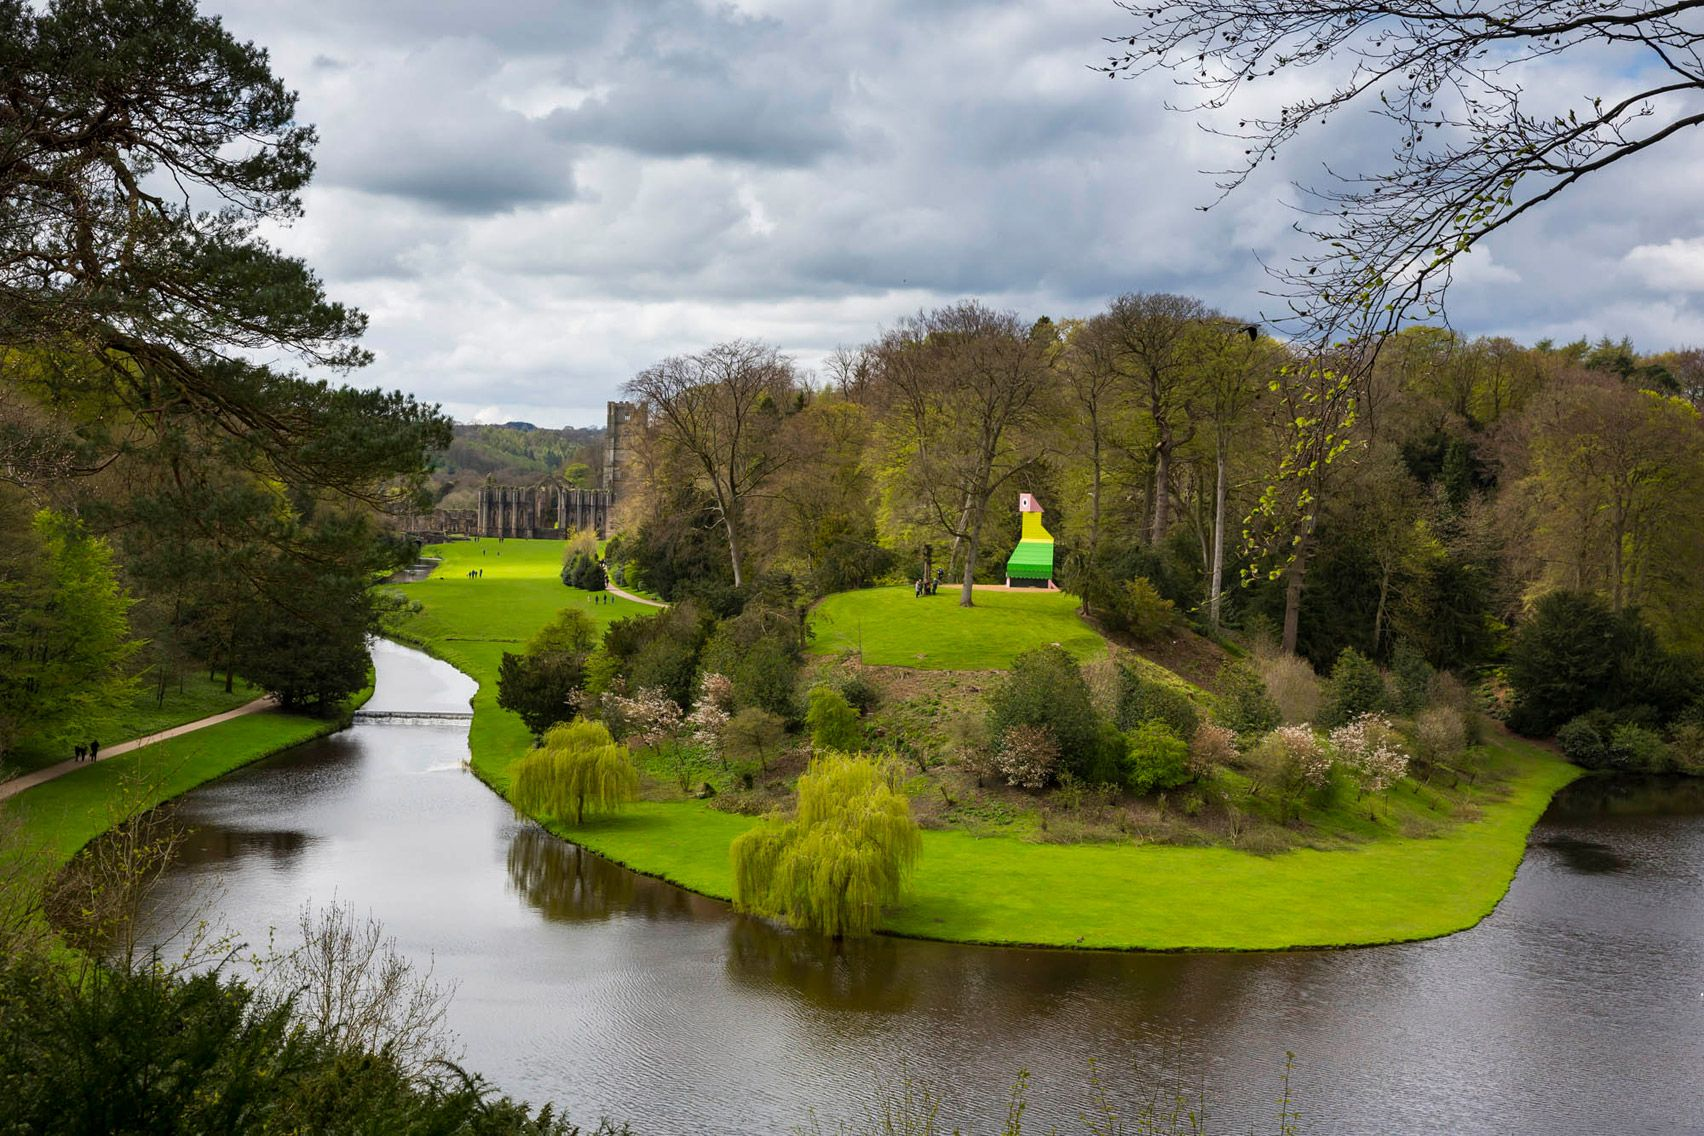 Charles Holland Installs Parrot Like Pavilion In National Trust Garden English Landscape Garden Royal Park Fountains Abbey